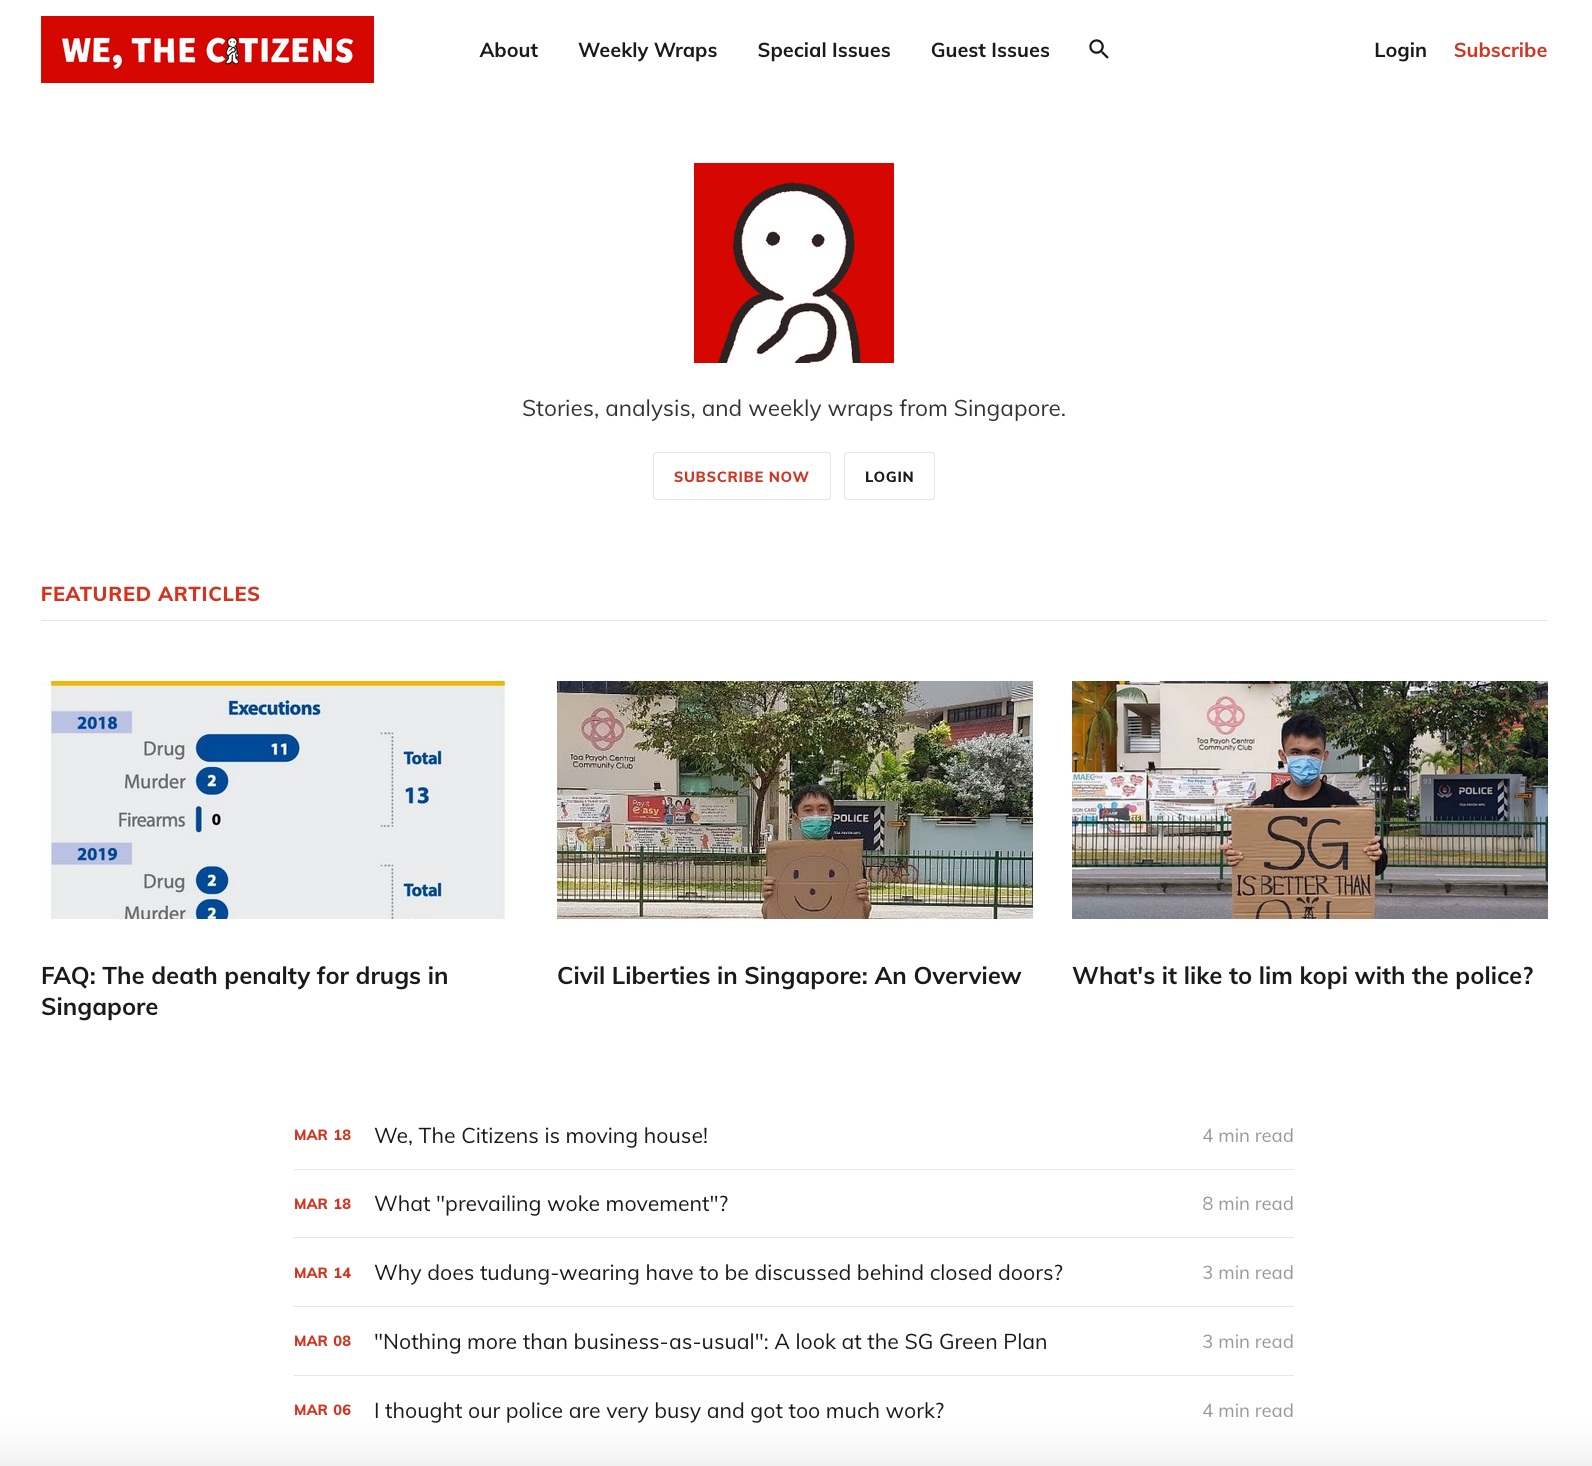 A screencap of the new homepage for the We, The Citizens newsletter.